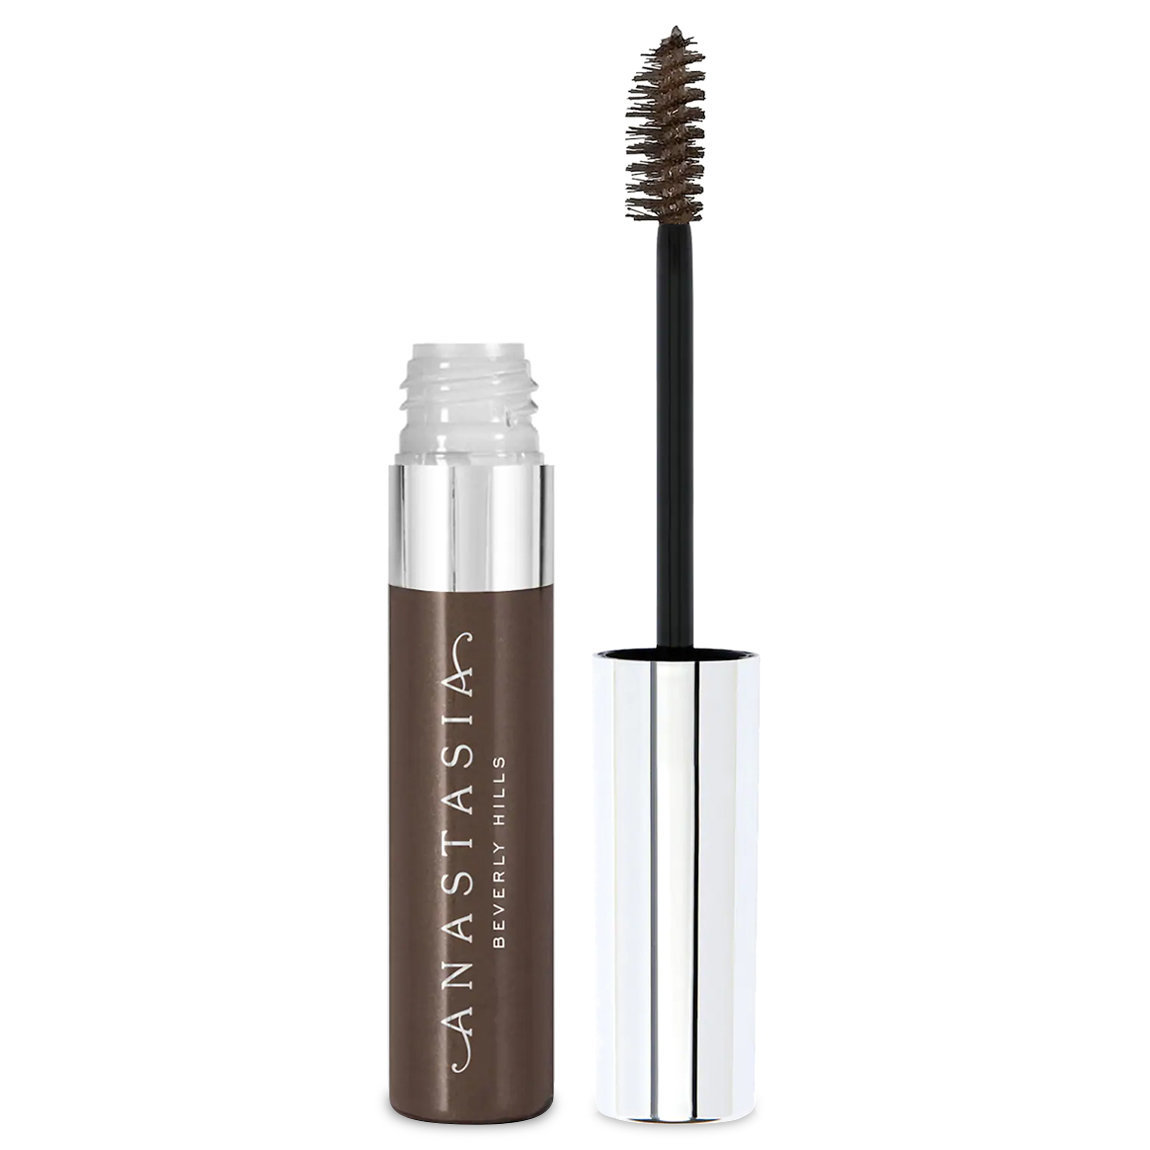 Anastasia Beverly Hills Tinted Brow Gel Espresso alternative view 1.